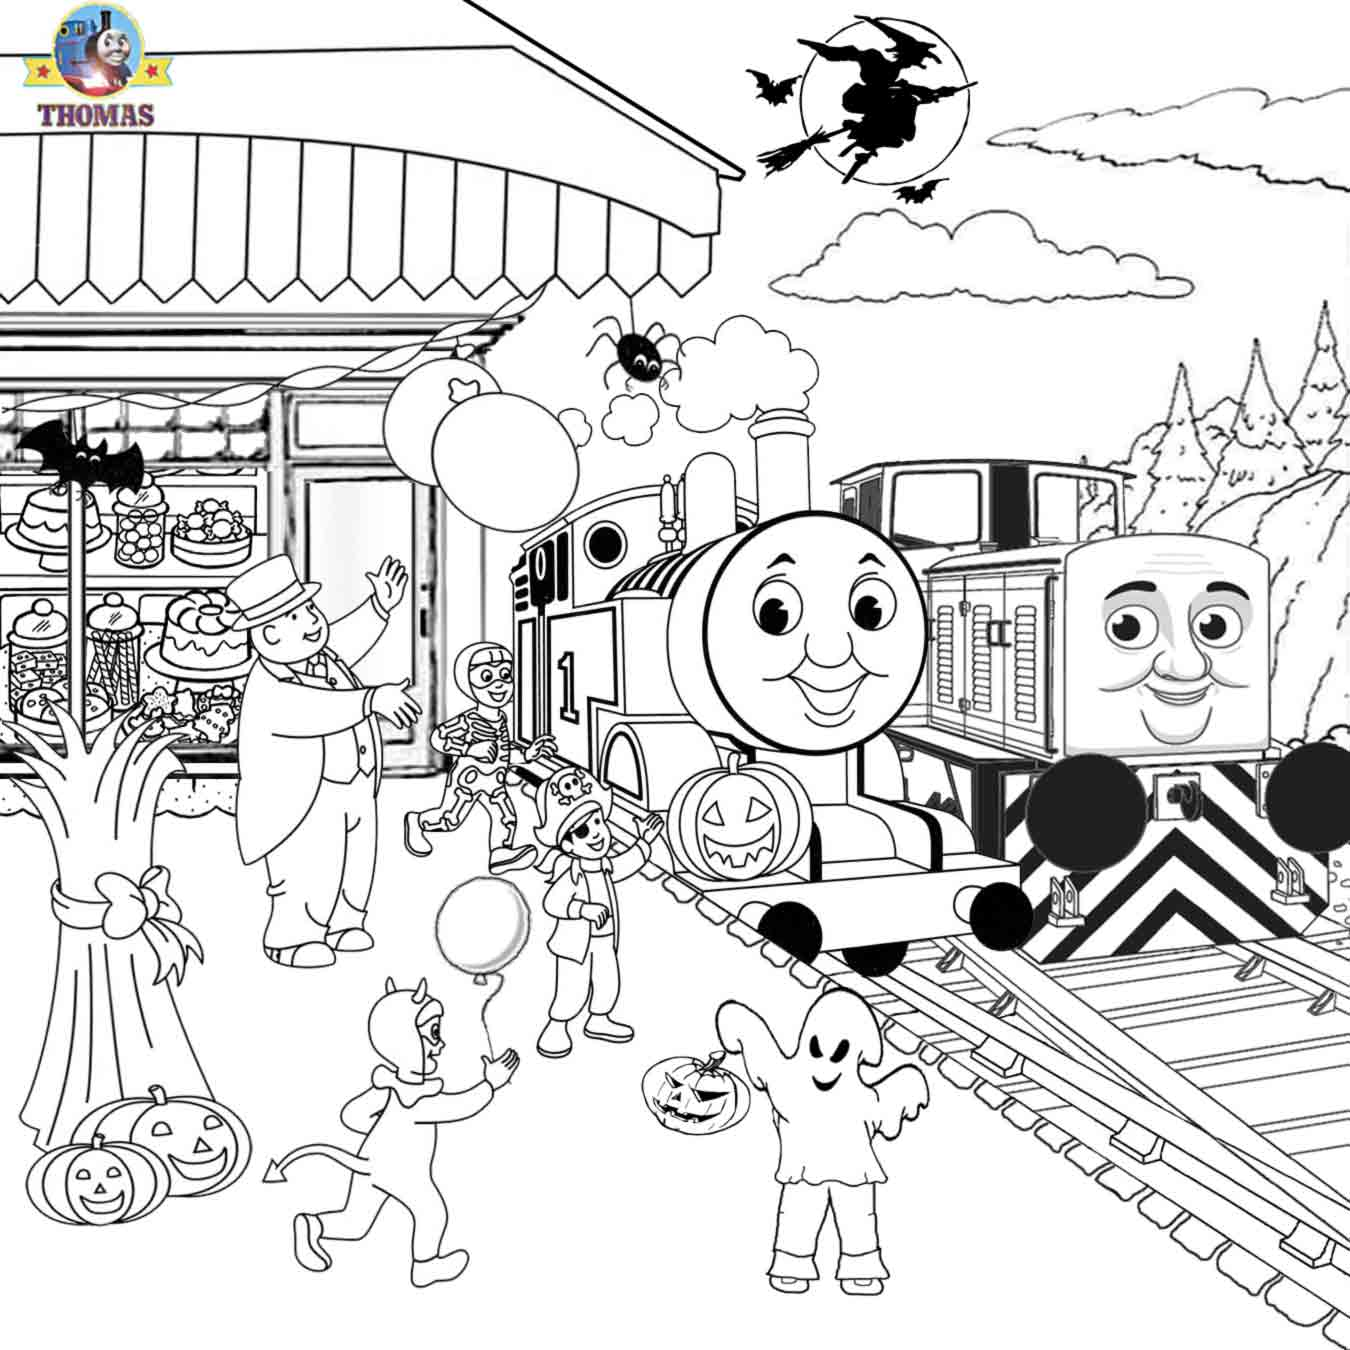 thomas and friends coloring sheets free coloring pages for boys worksheets thomas the train thomas friends and sheets coloring